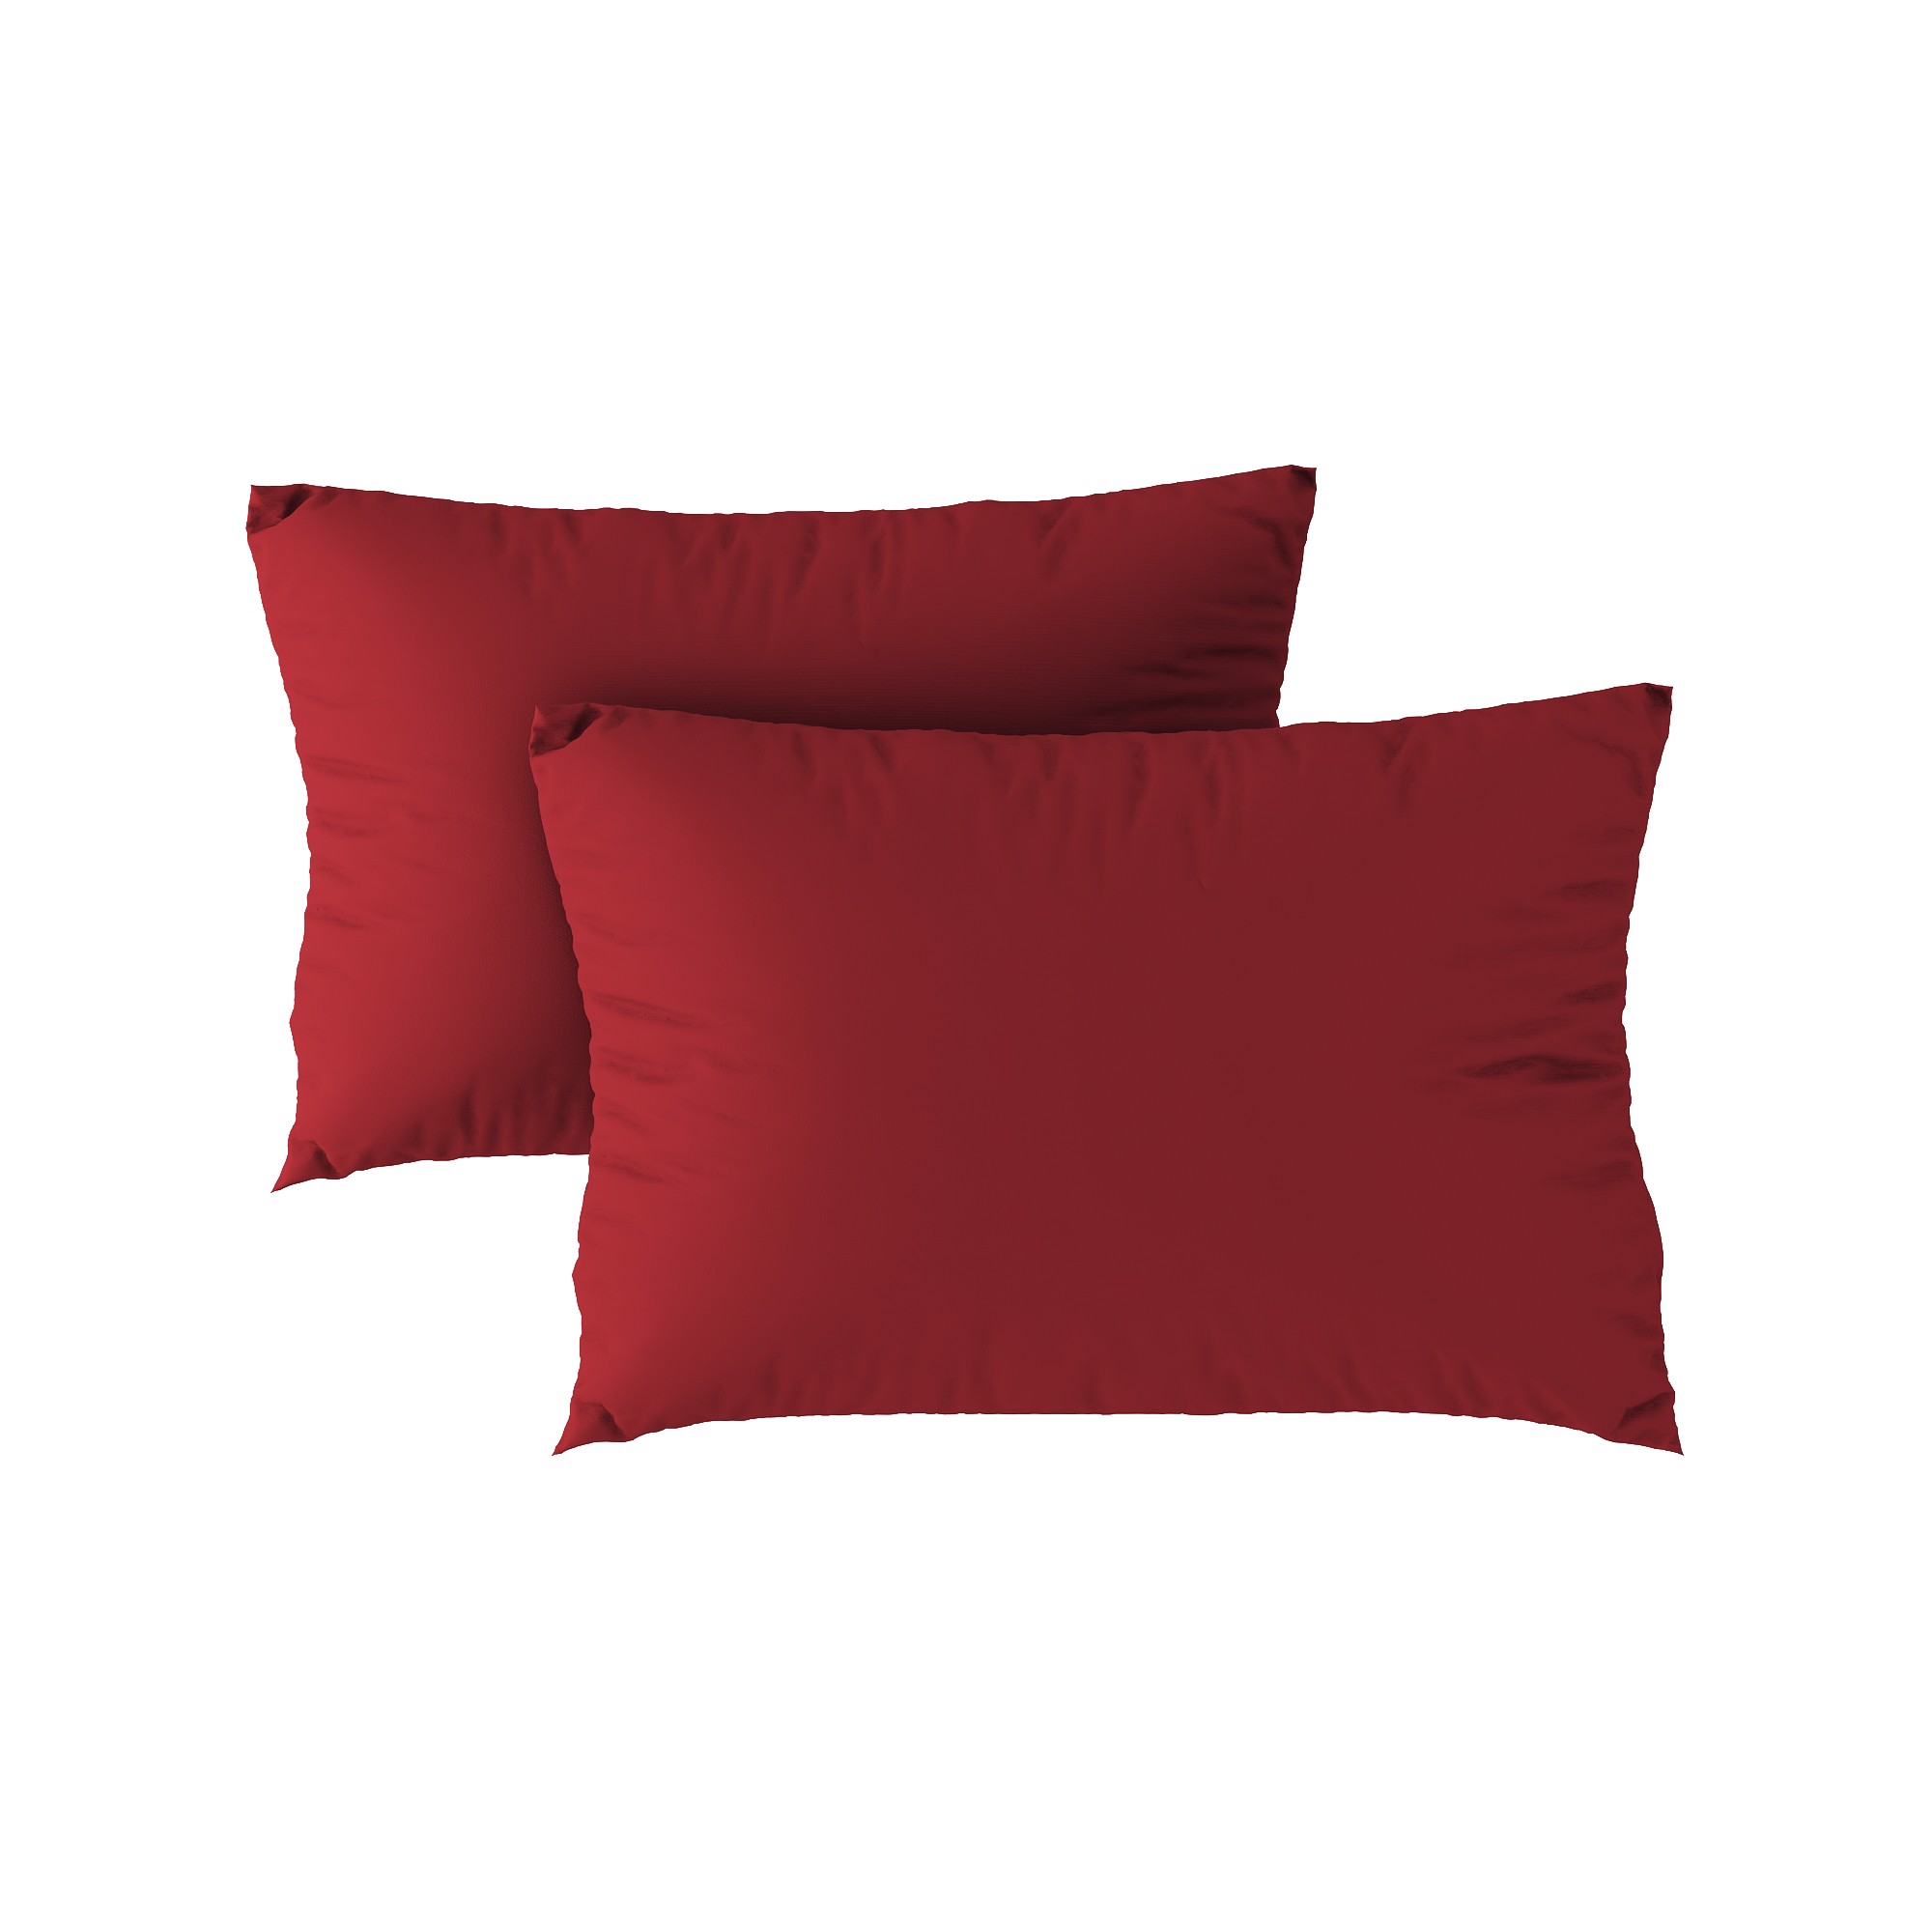 Standard pillow case 18 Red (2pcs)